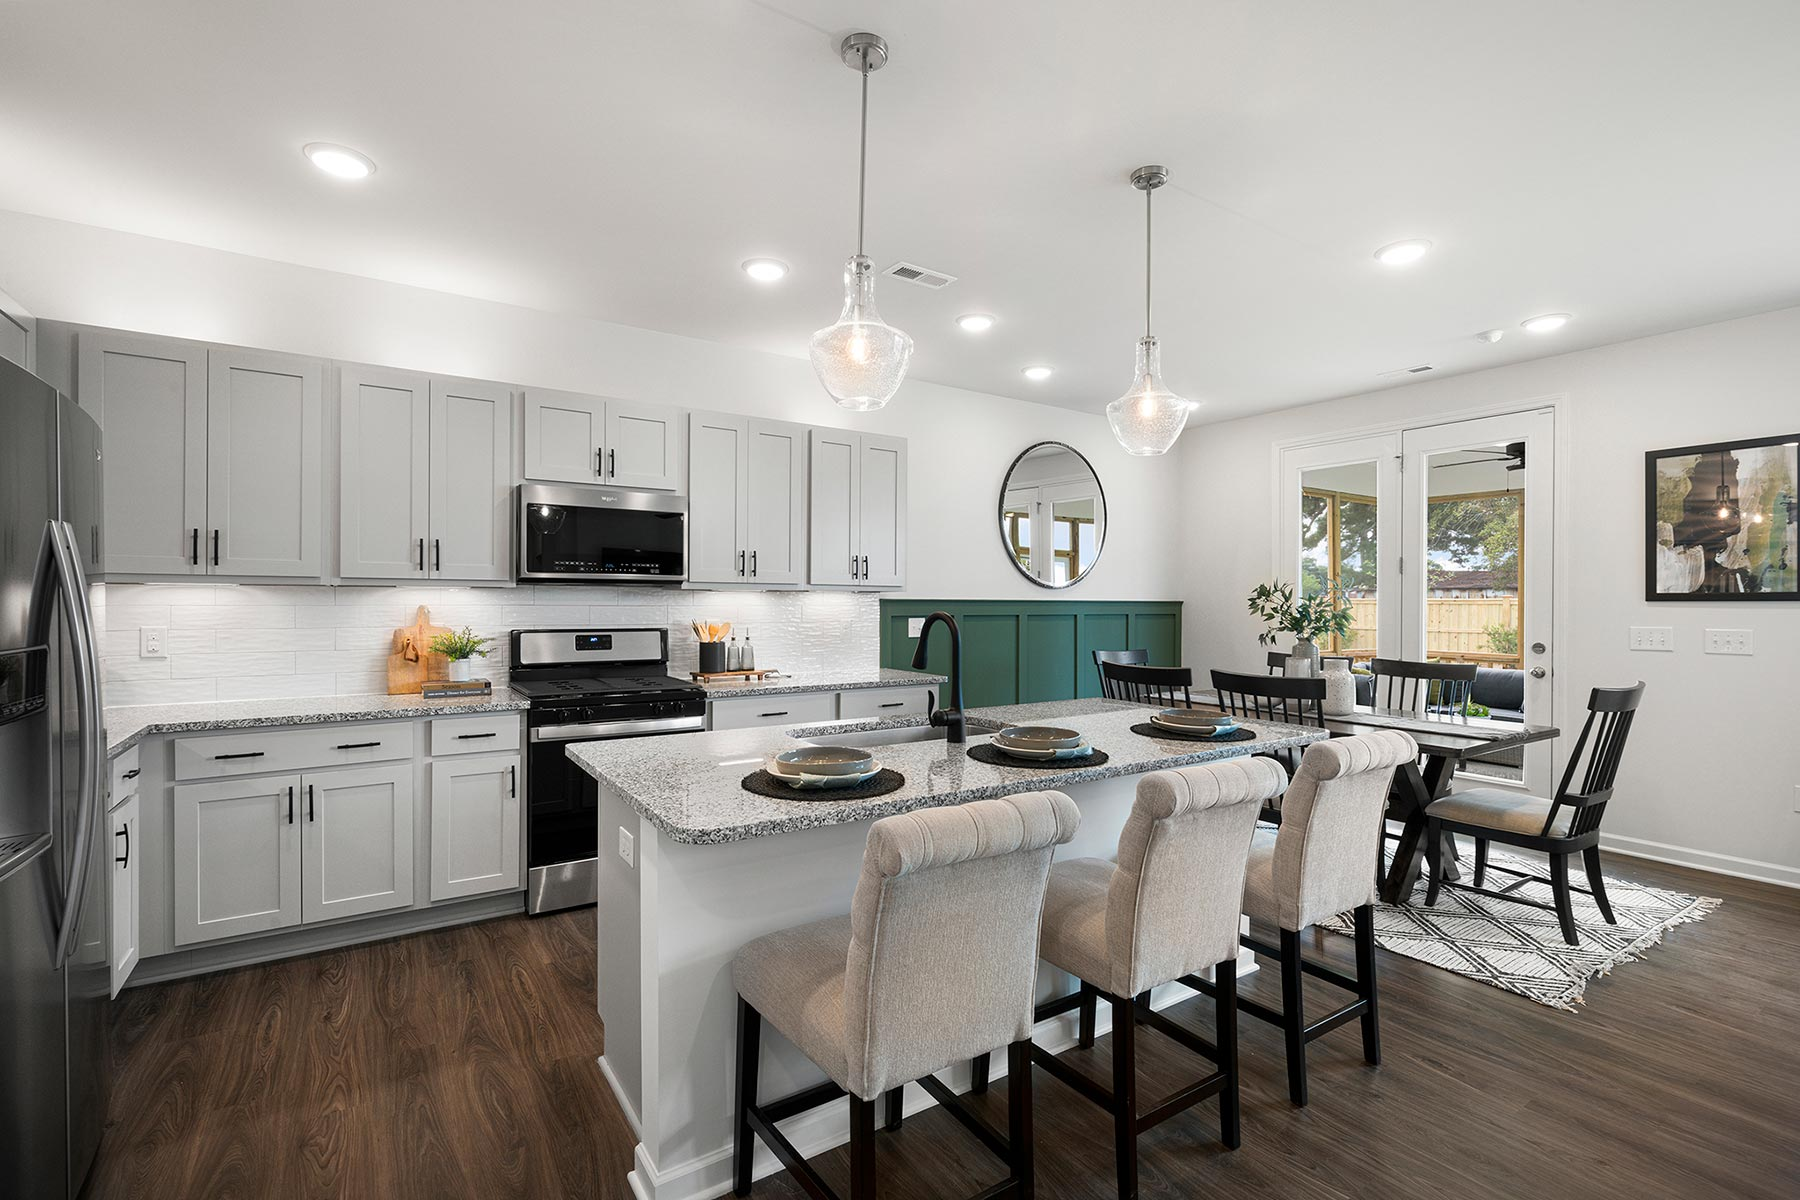 Tucker Plan Kitchen at Wendell Falls in Wendell North Carolina by Mattamy Homes